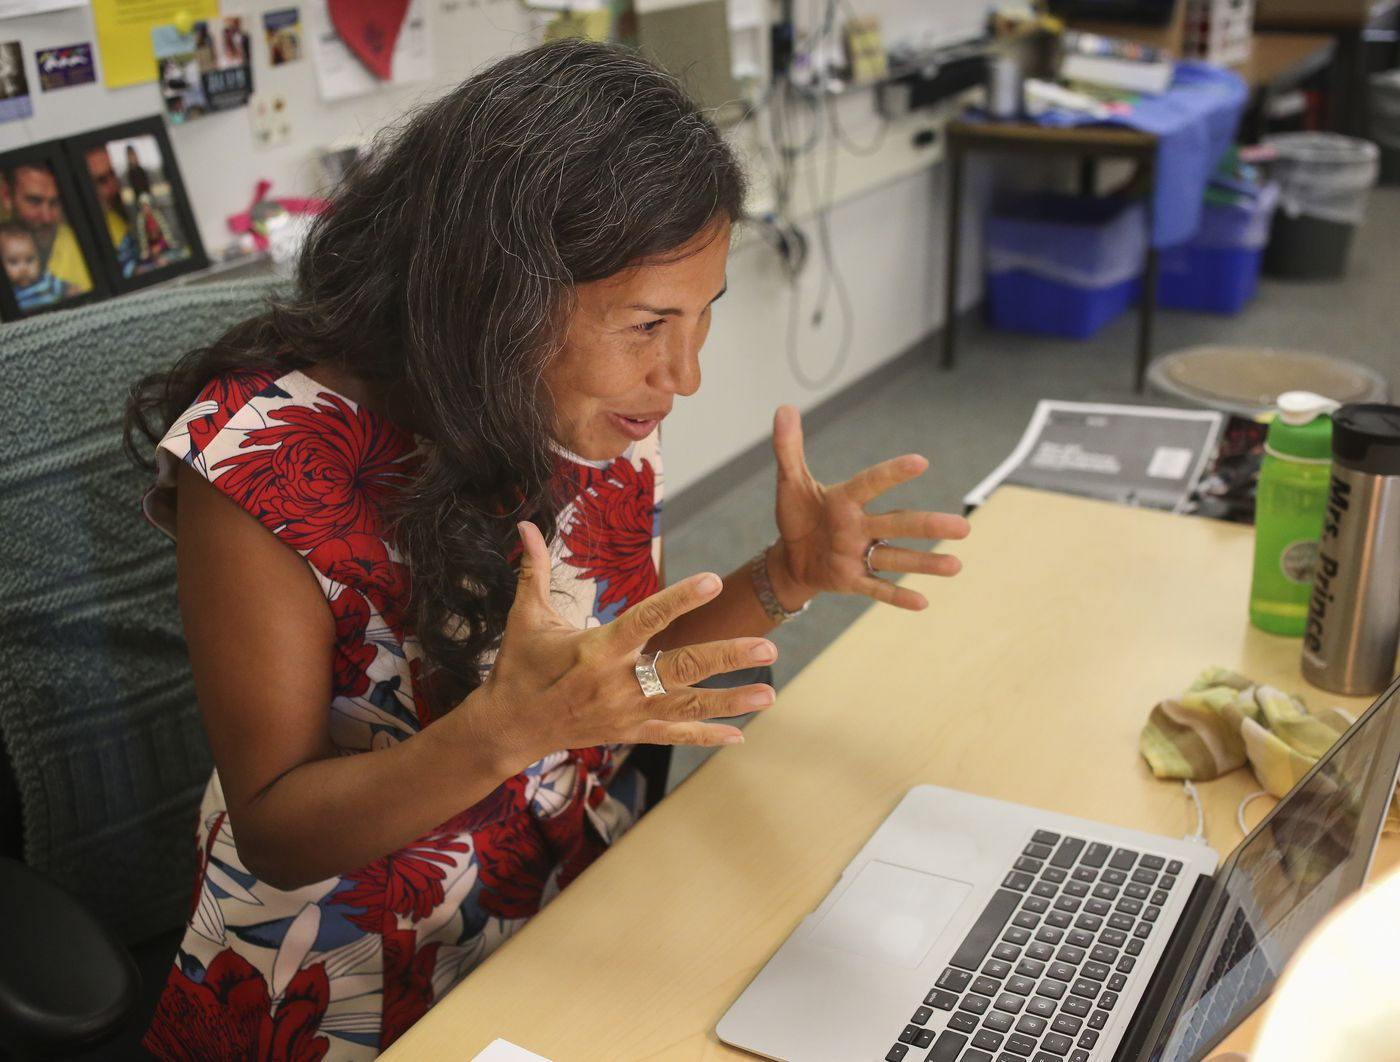 Lynda Prince teaches her first class of the school year, ninth grade pre-Advanced Placement world history and geography, remotely from her classroom on the first day of school at Bartlett High School on Aug. 20, 2020. (Emily Mesner / ADN)